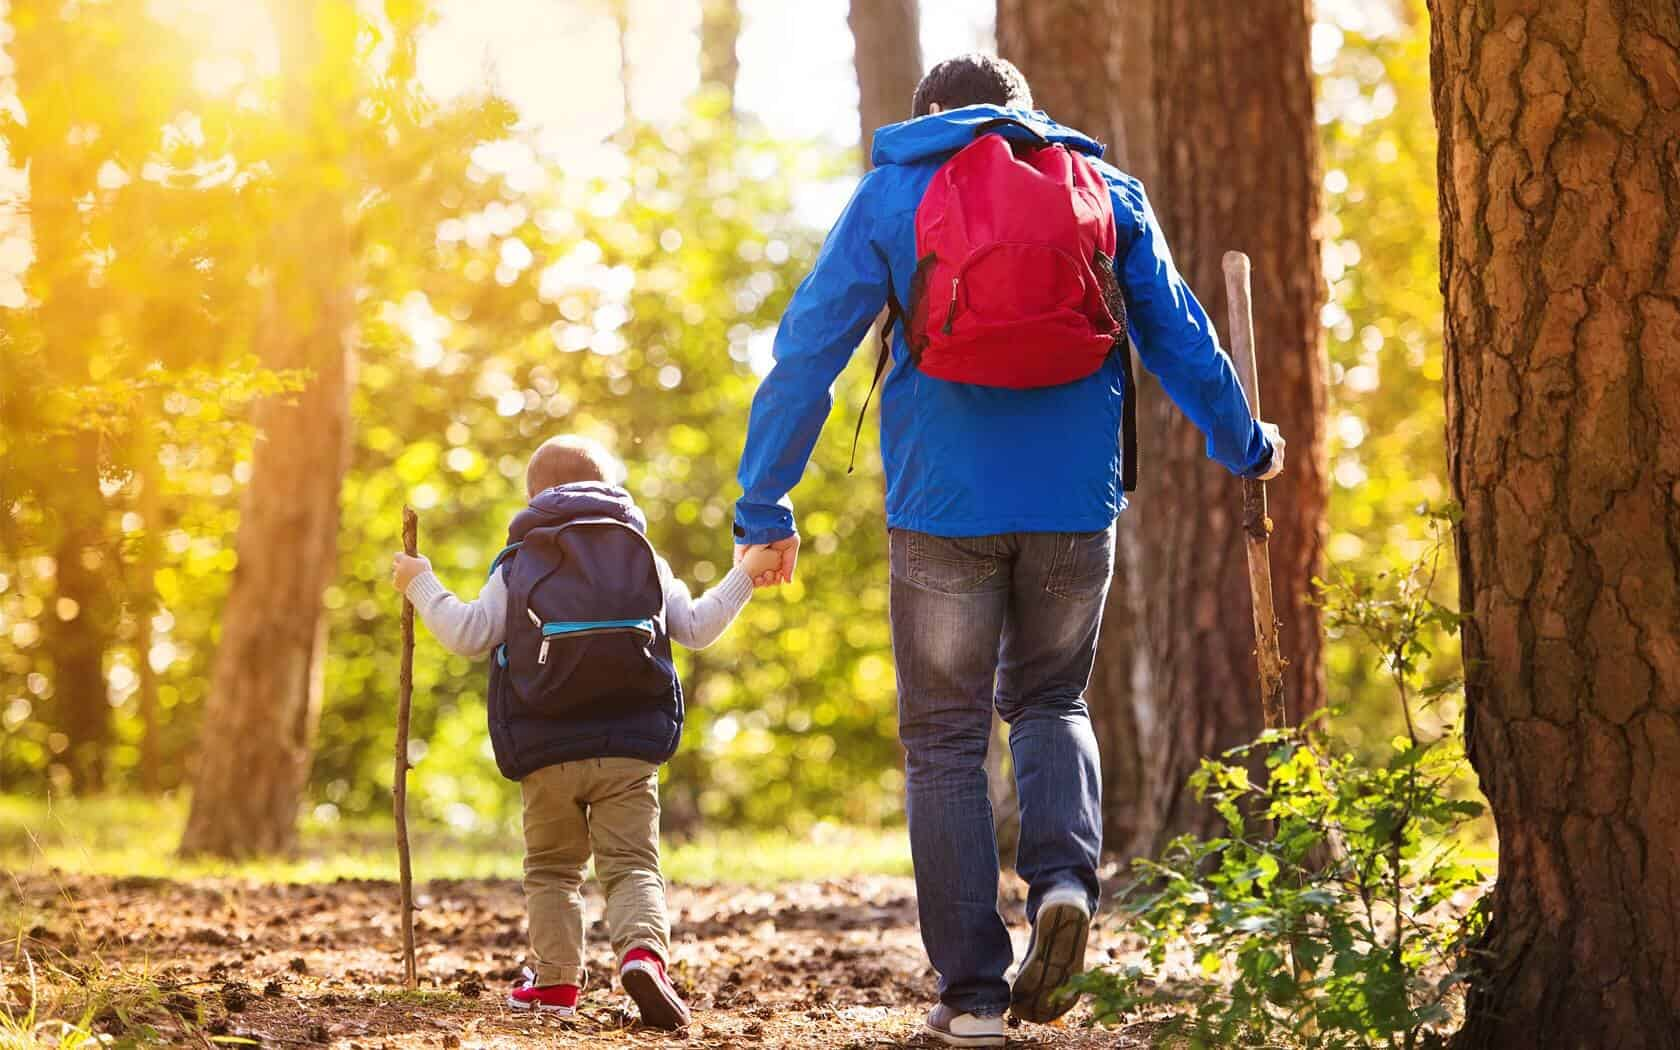 A father and son hiking in the forest.